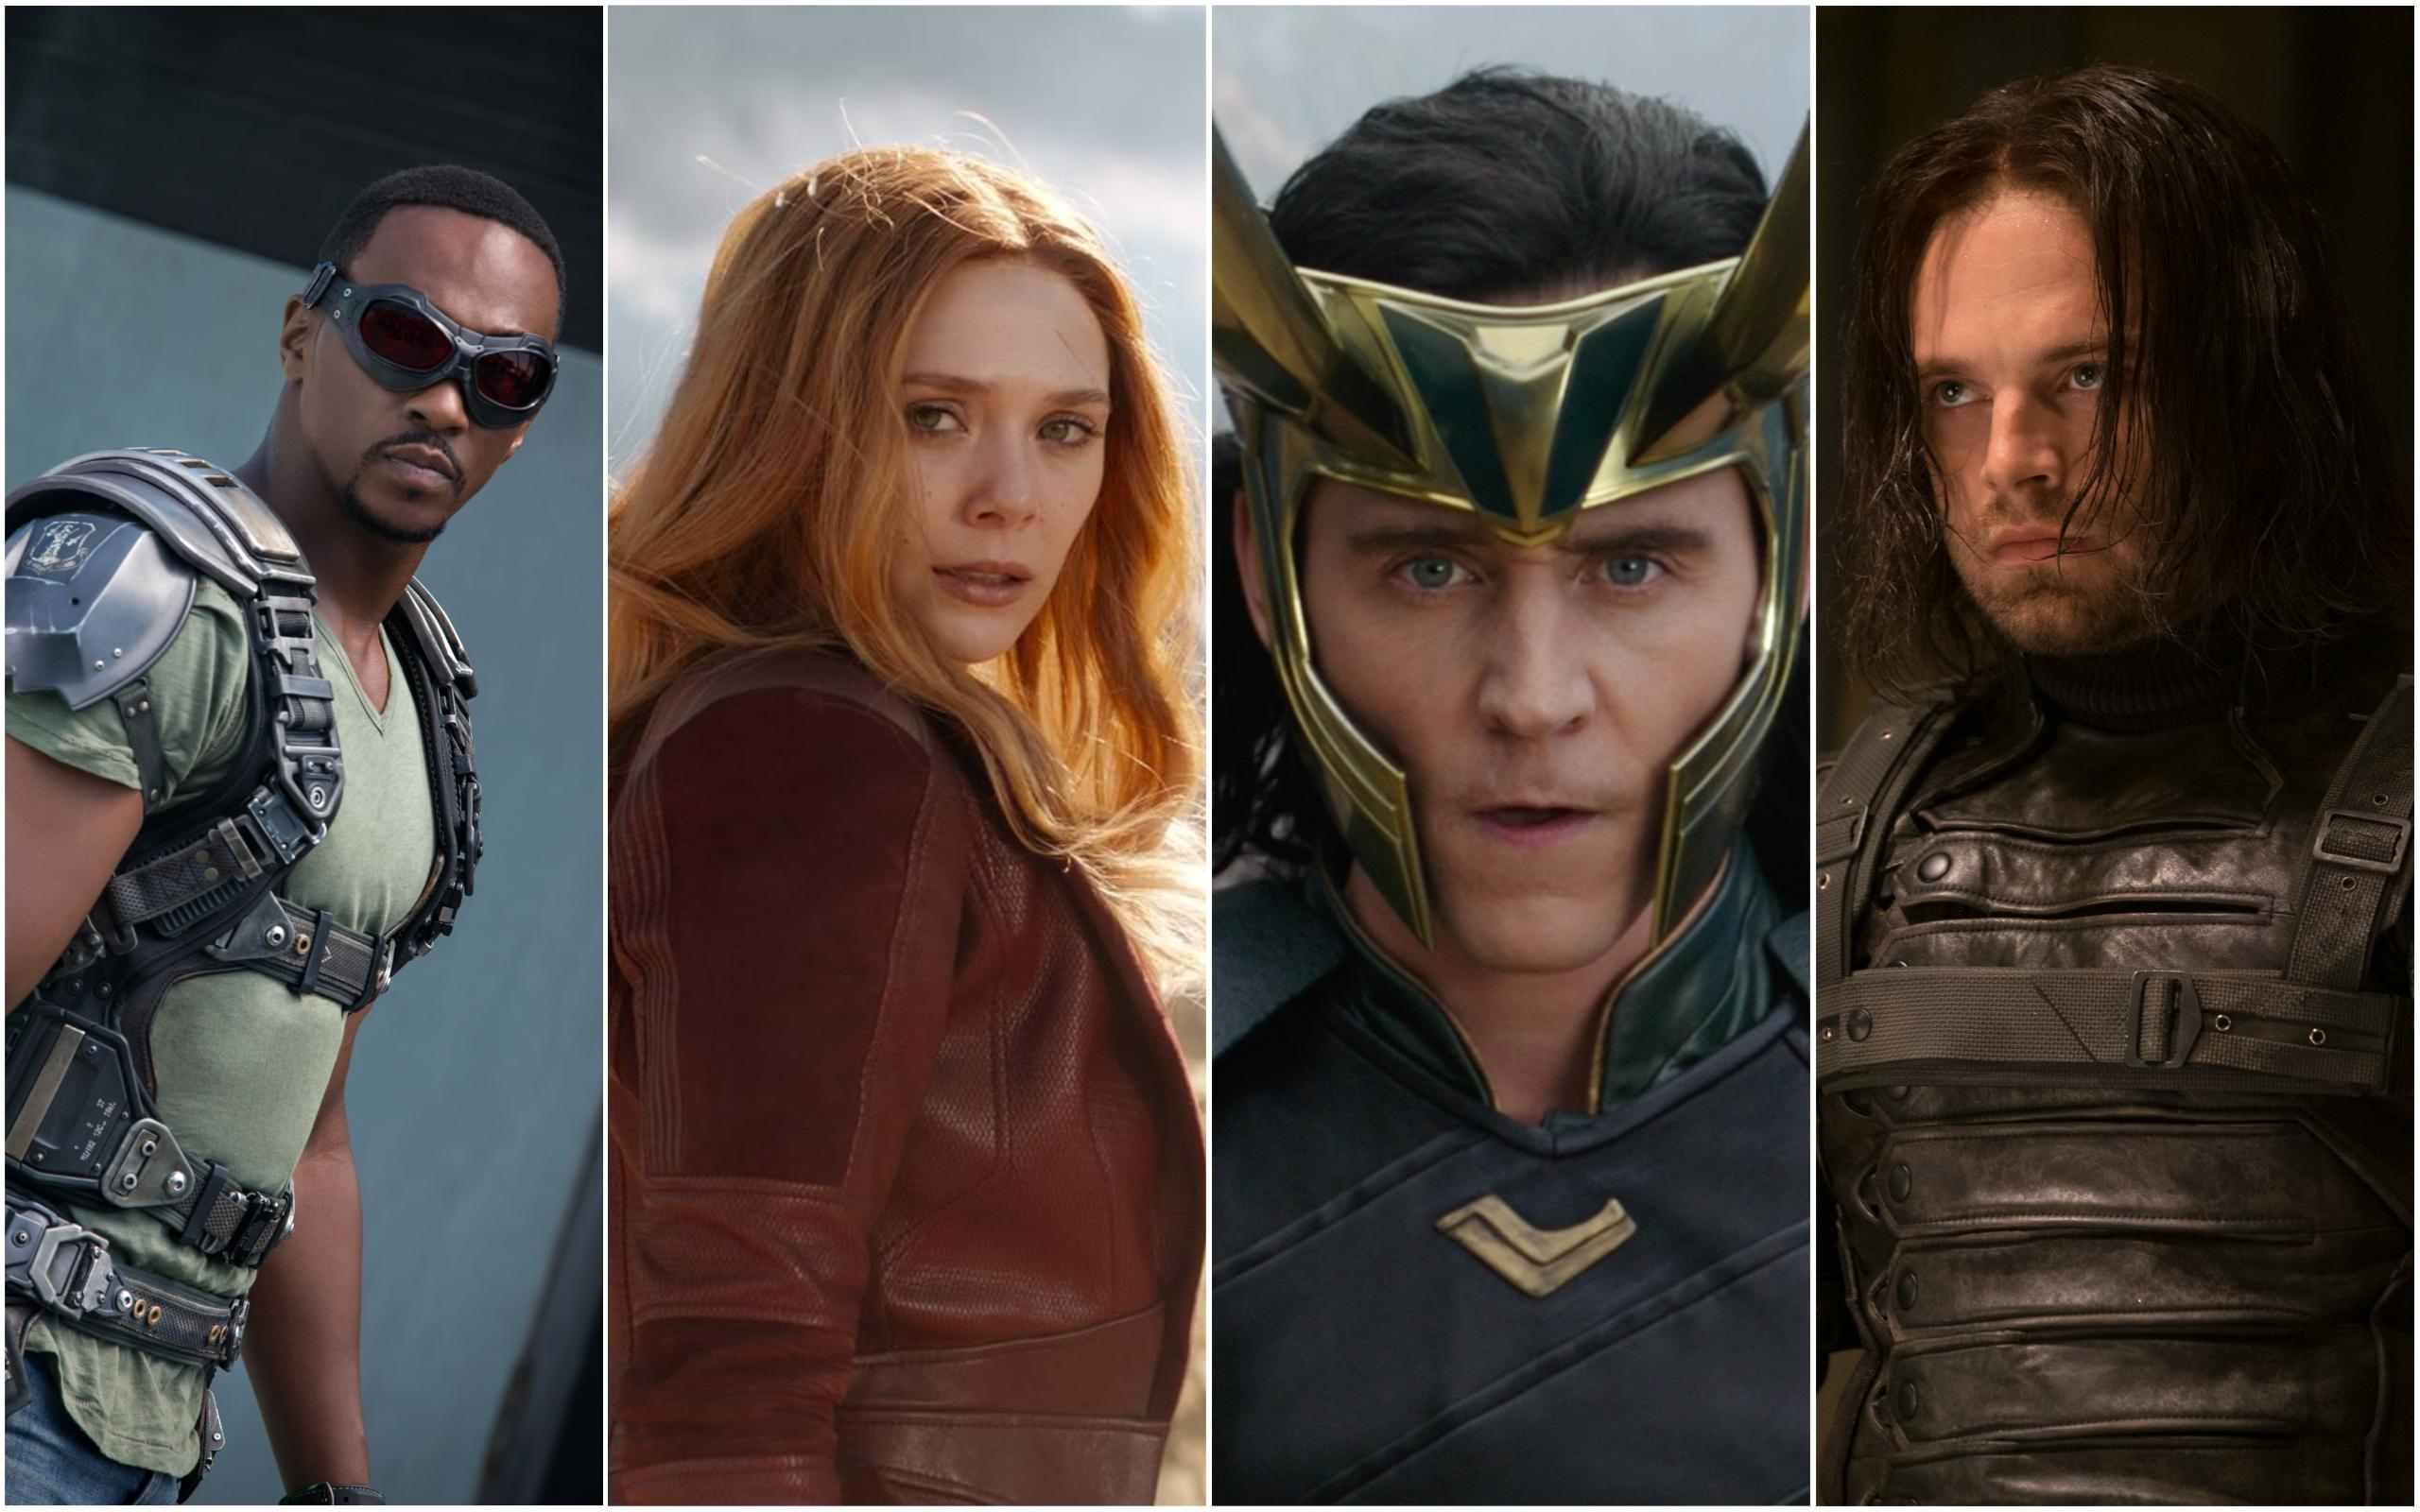 Falcon, Scarlett Witch, Loki and Winter Soldier of the mcu cropped together